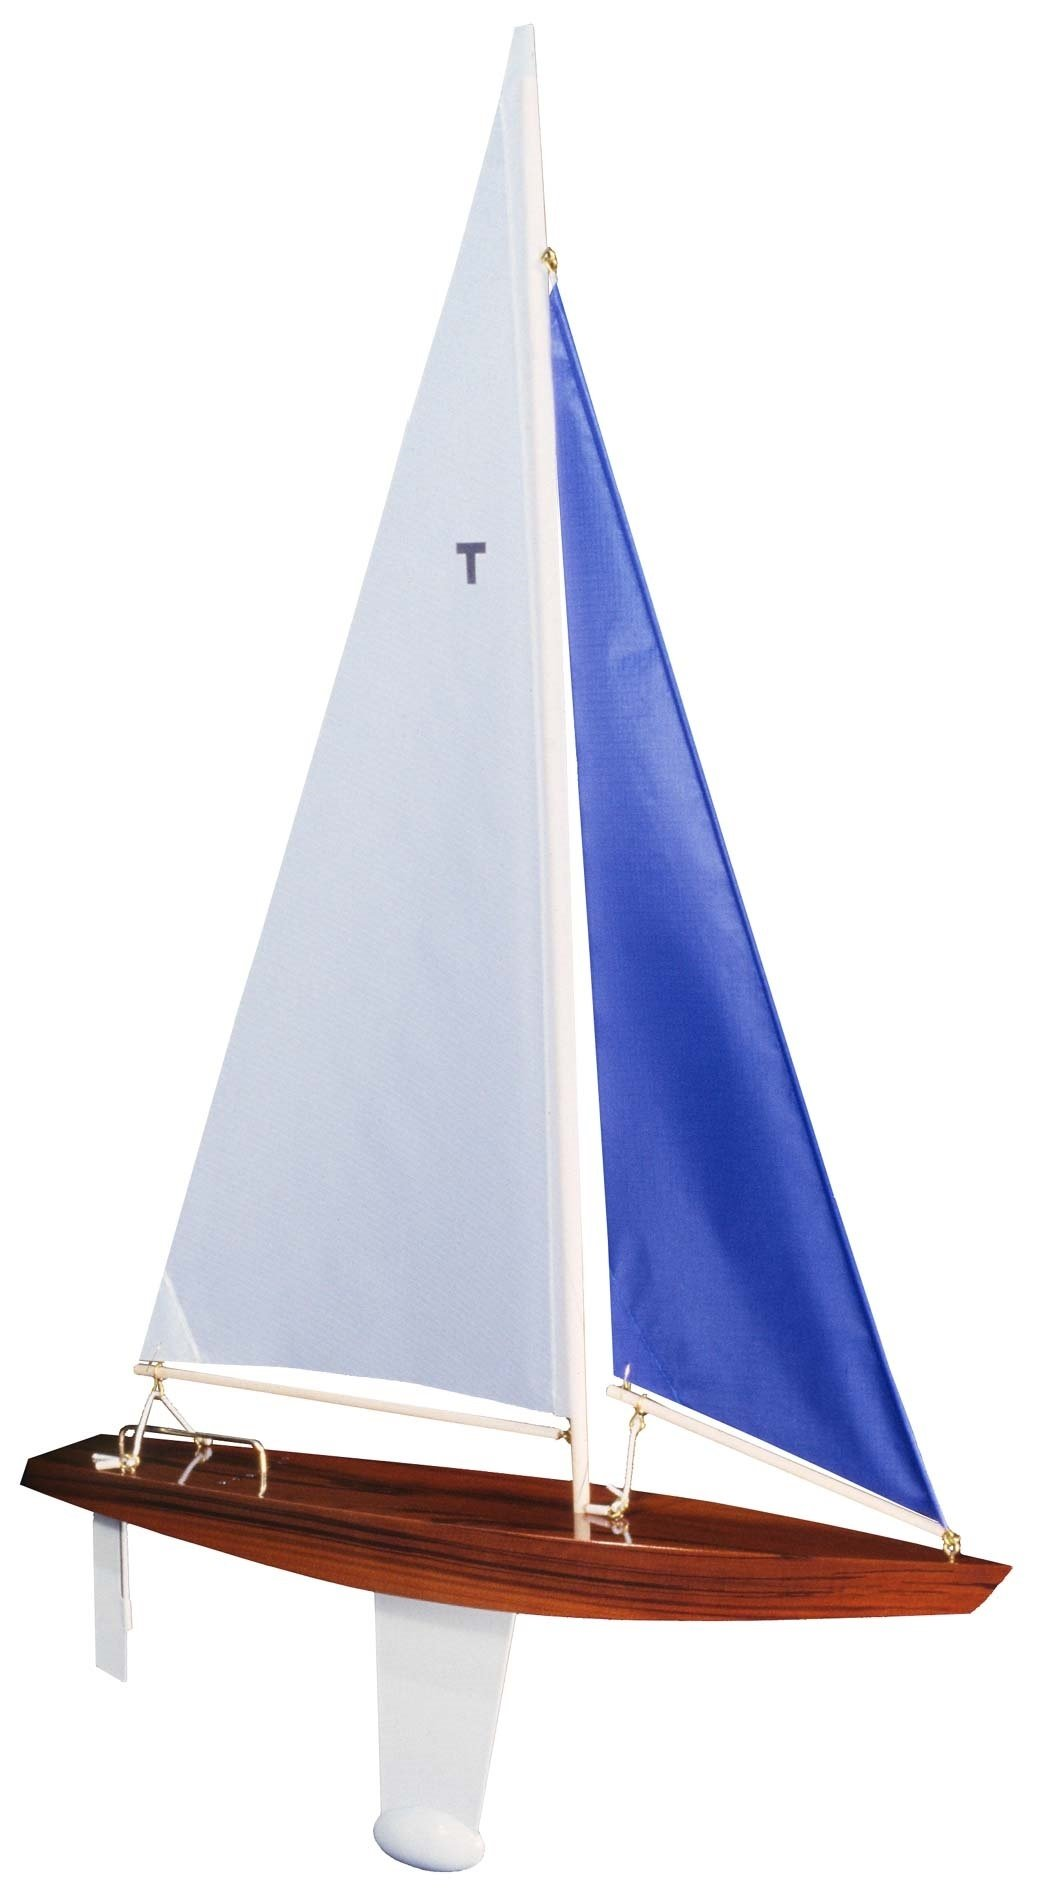 T Class Racing Sloop Finished (White/blue) - Floating Model Sailboat, Toy Sailboats that Sail, Toy Sailboats that Float, Toy Sailboat Wood, Toy Sailboat Wooden - It Really Sails!